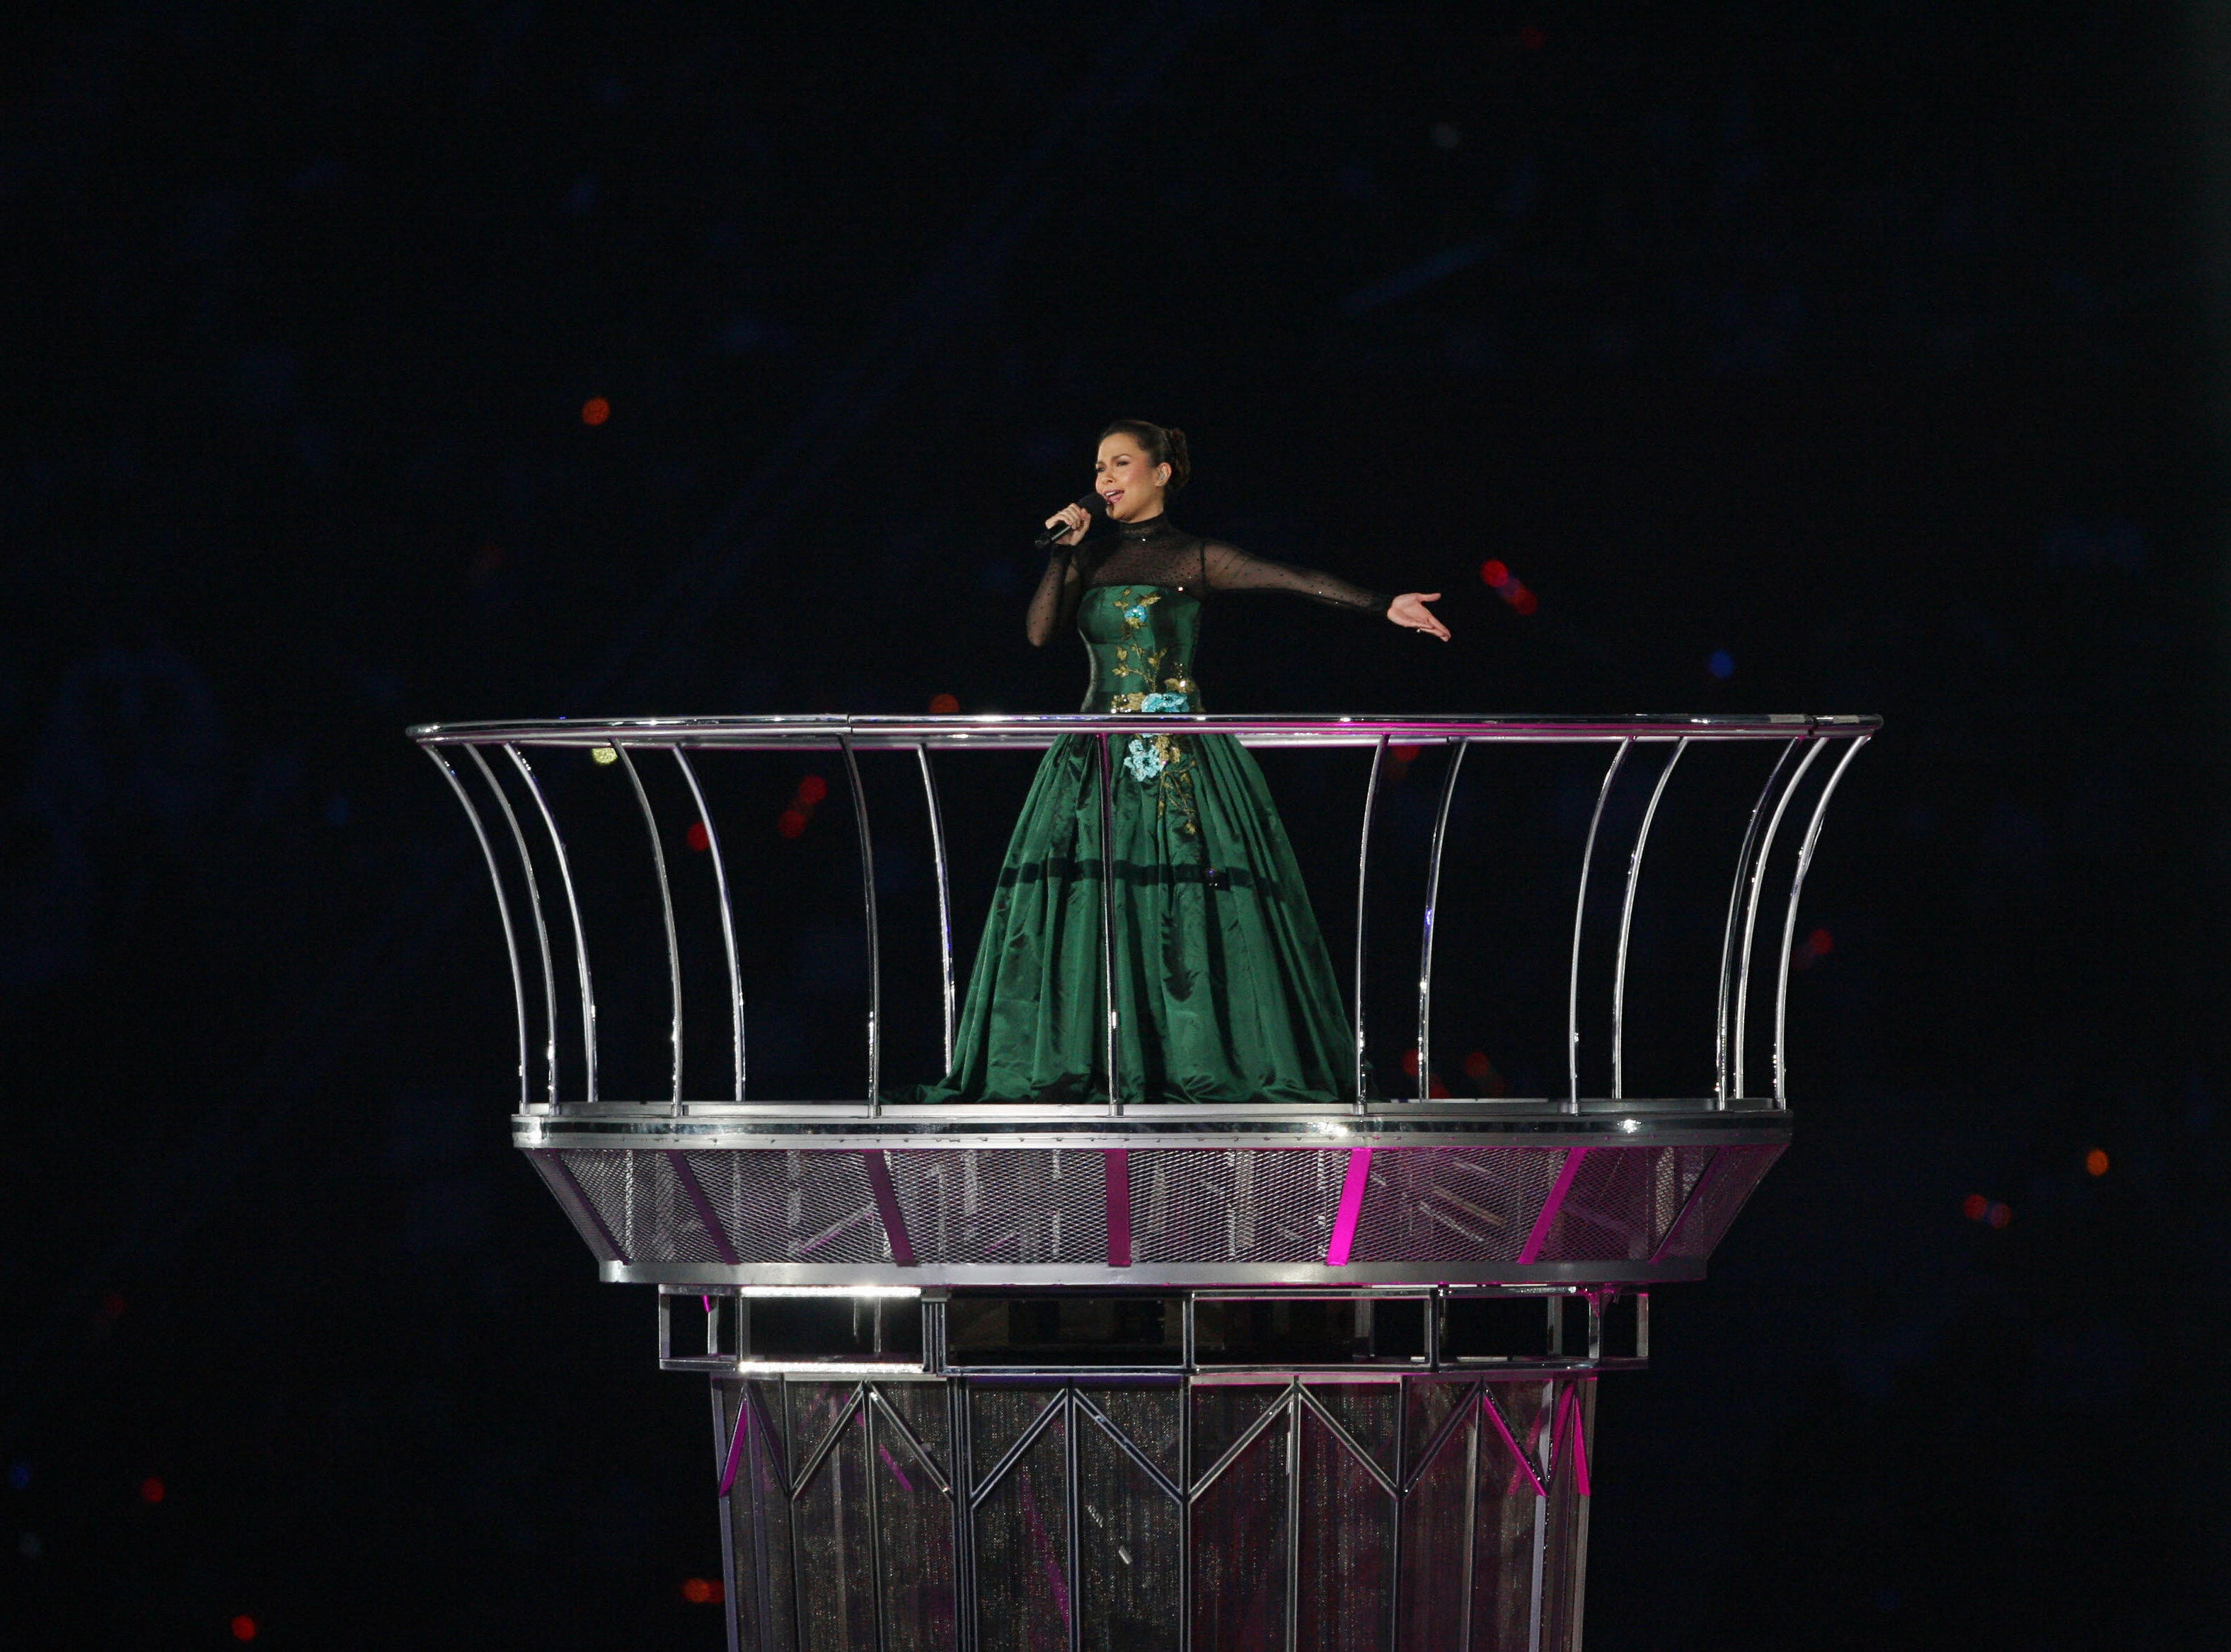 Lea Salonga performs during the closing  ceremony at the 15th Asian Games in Doha on Dec. 15, 2006.